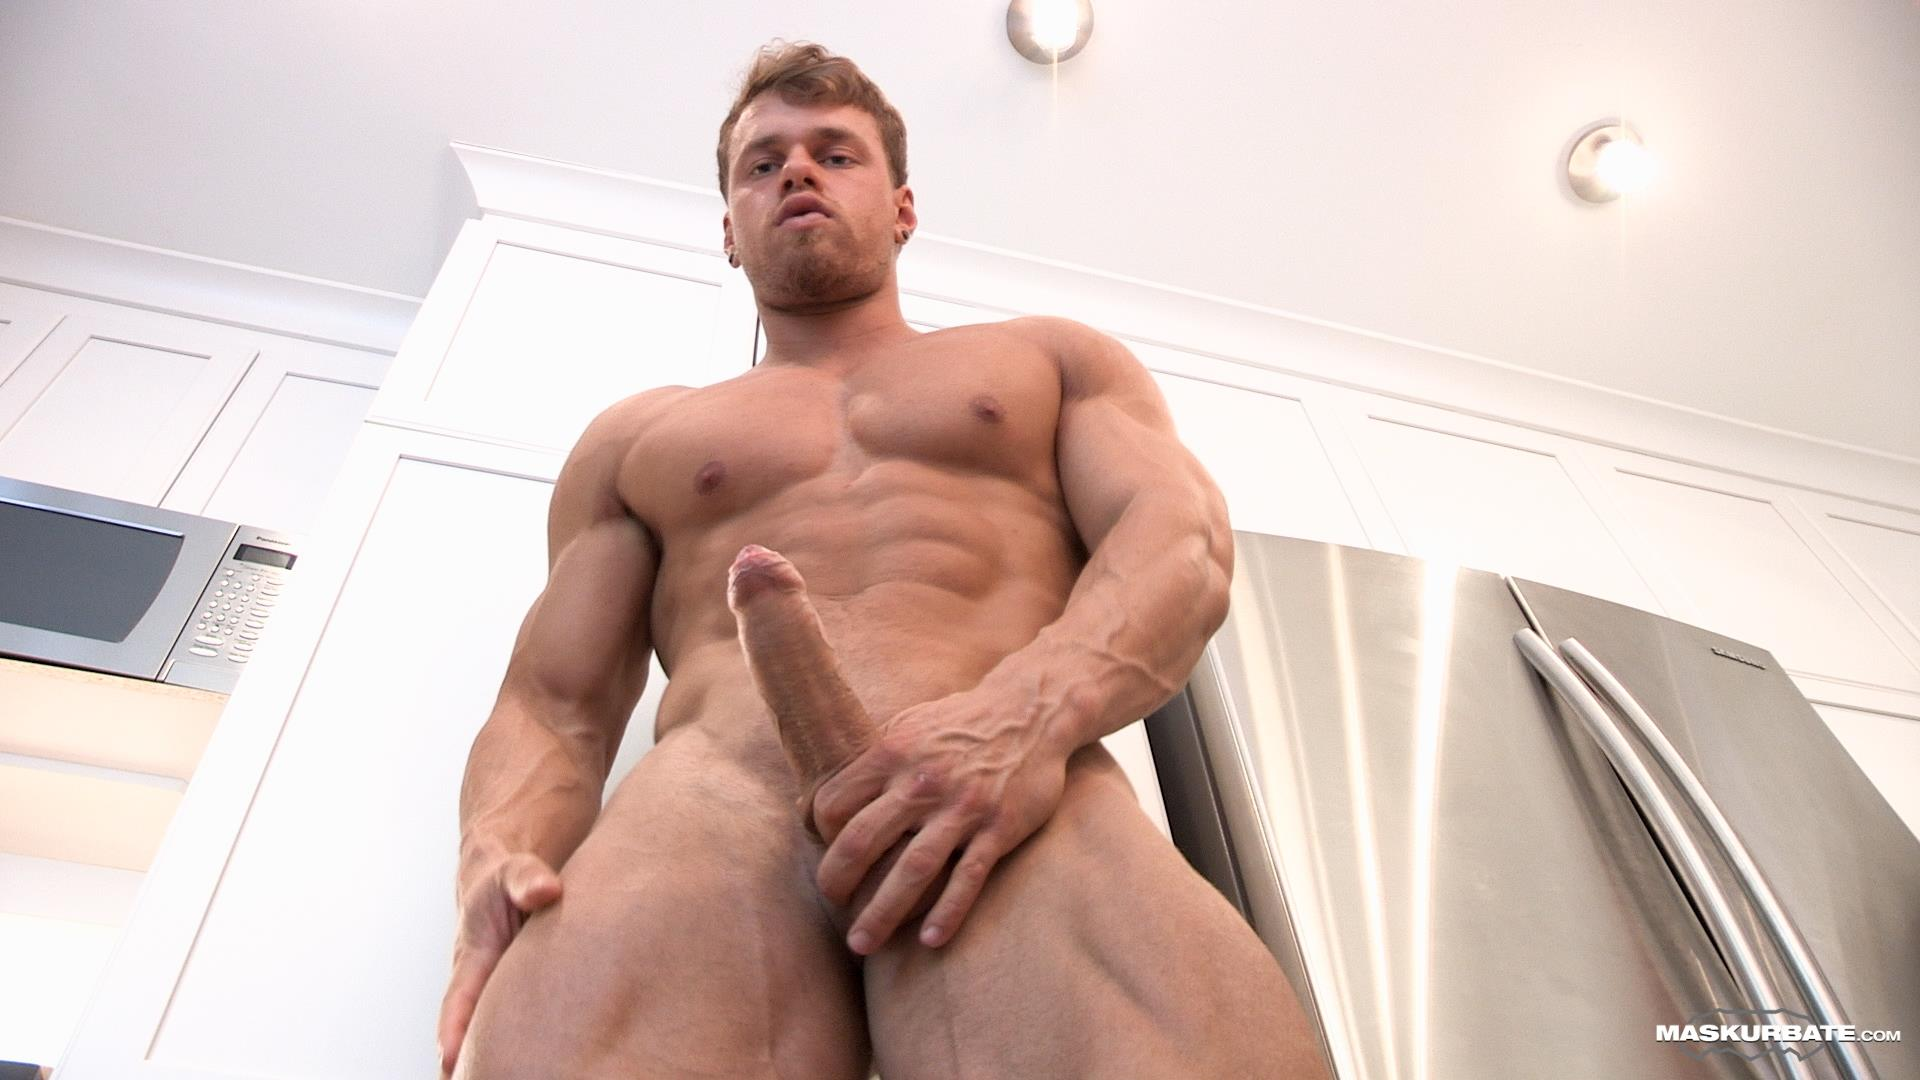 Maskurbate-Muscular-Guy-With-A-Big-Uncut-Cock-Jerking-Off-09 Jerking Off My Big Uncut Cock Into My Friends Wine Glass On New Years Eve